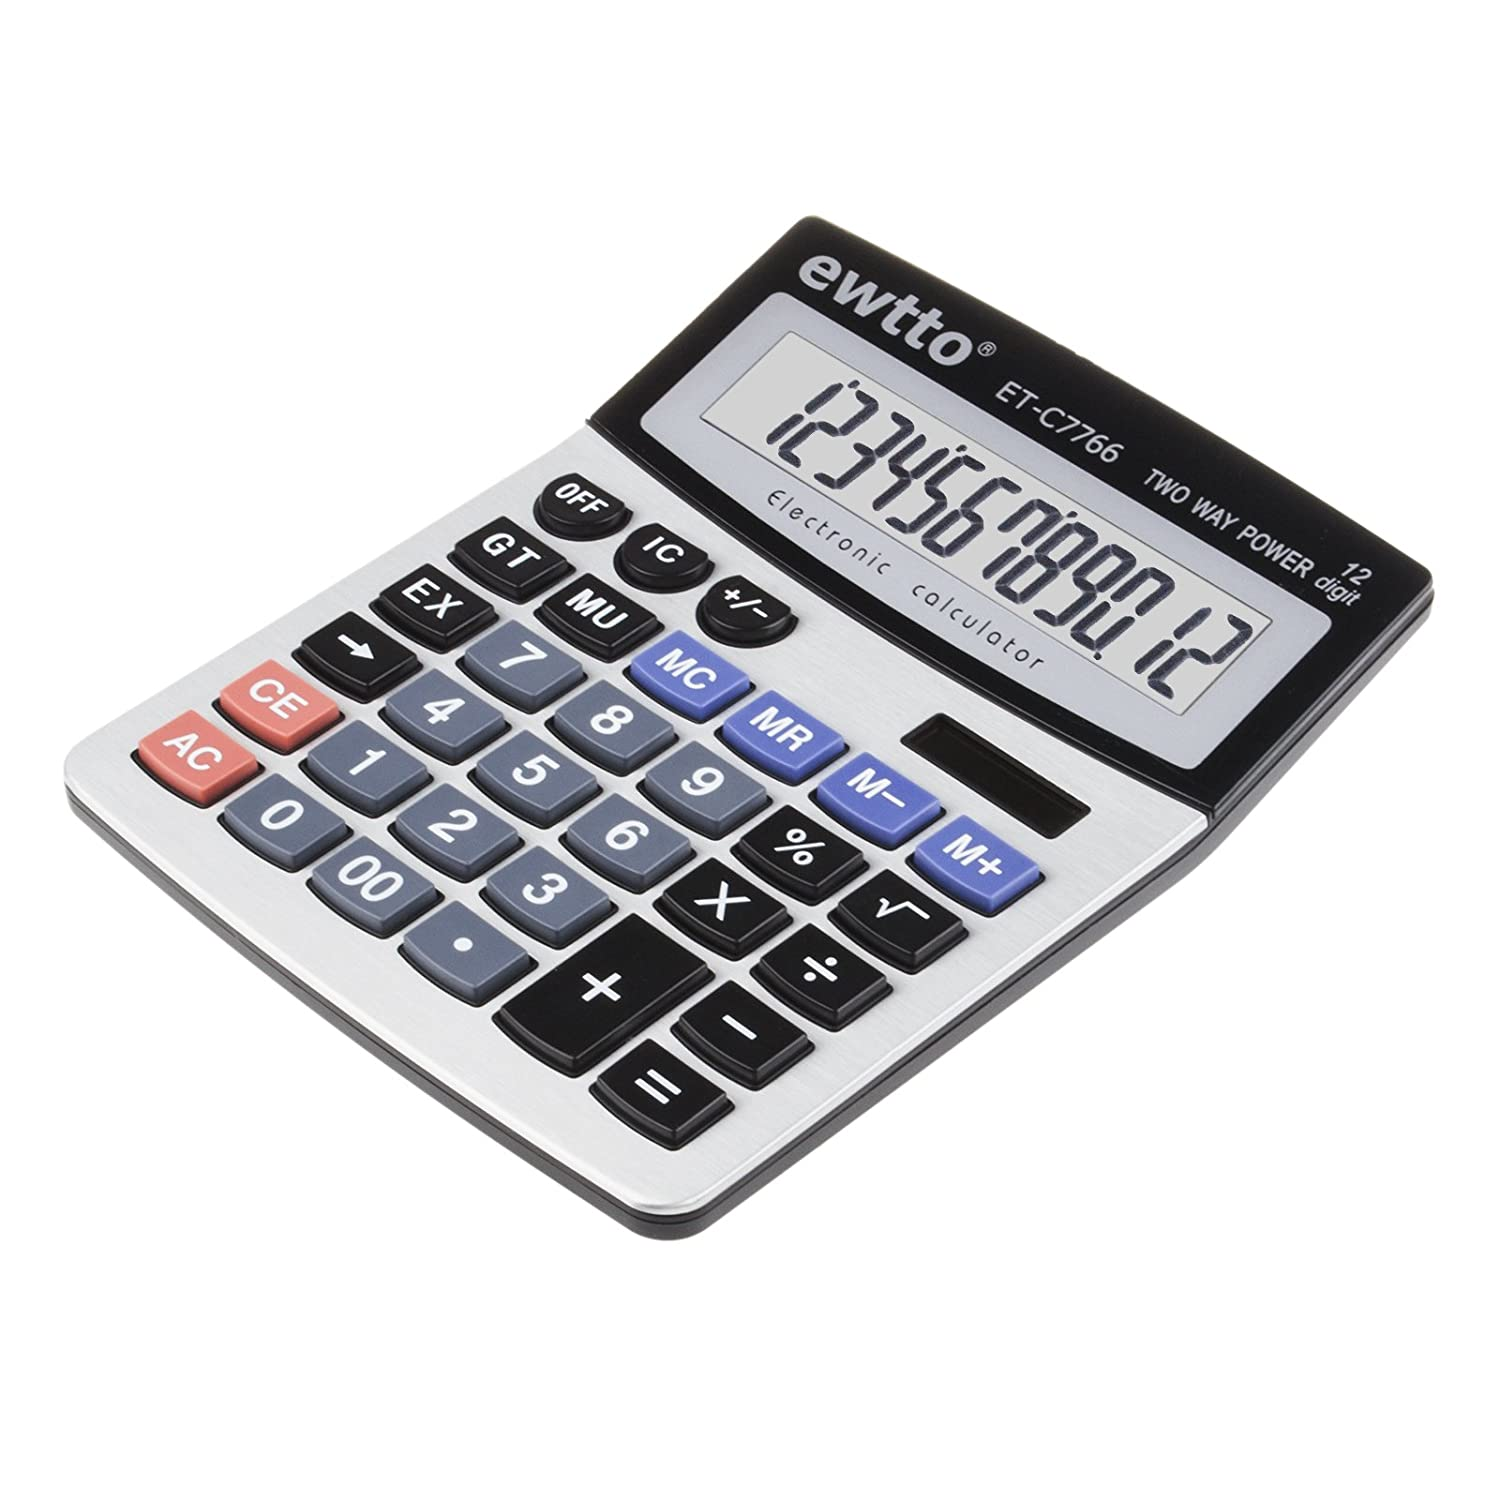 Chic EWTTO Solar Desktop Calculator Standard Basic Function - Abb basic relay school